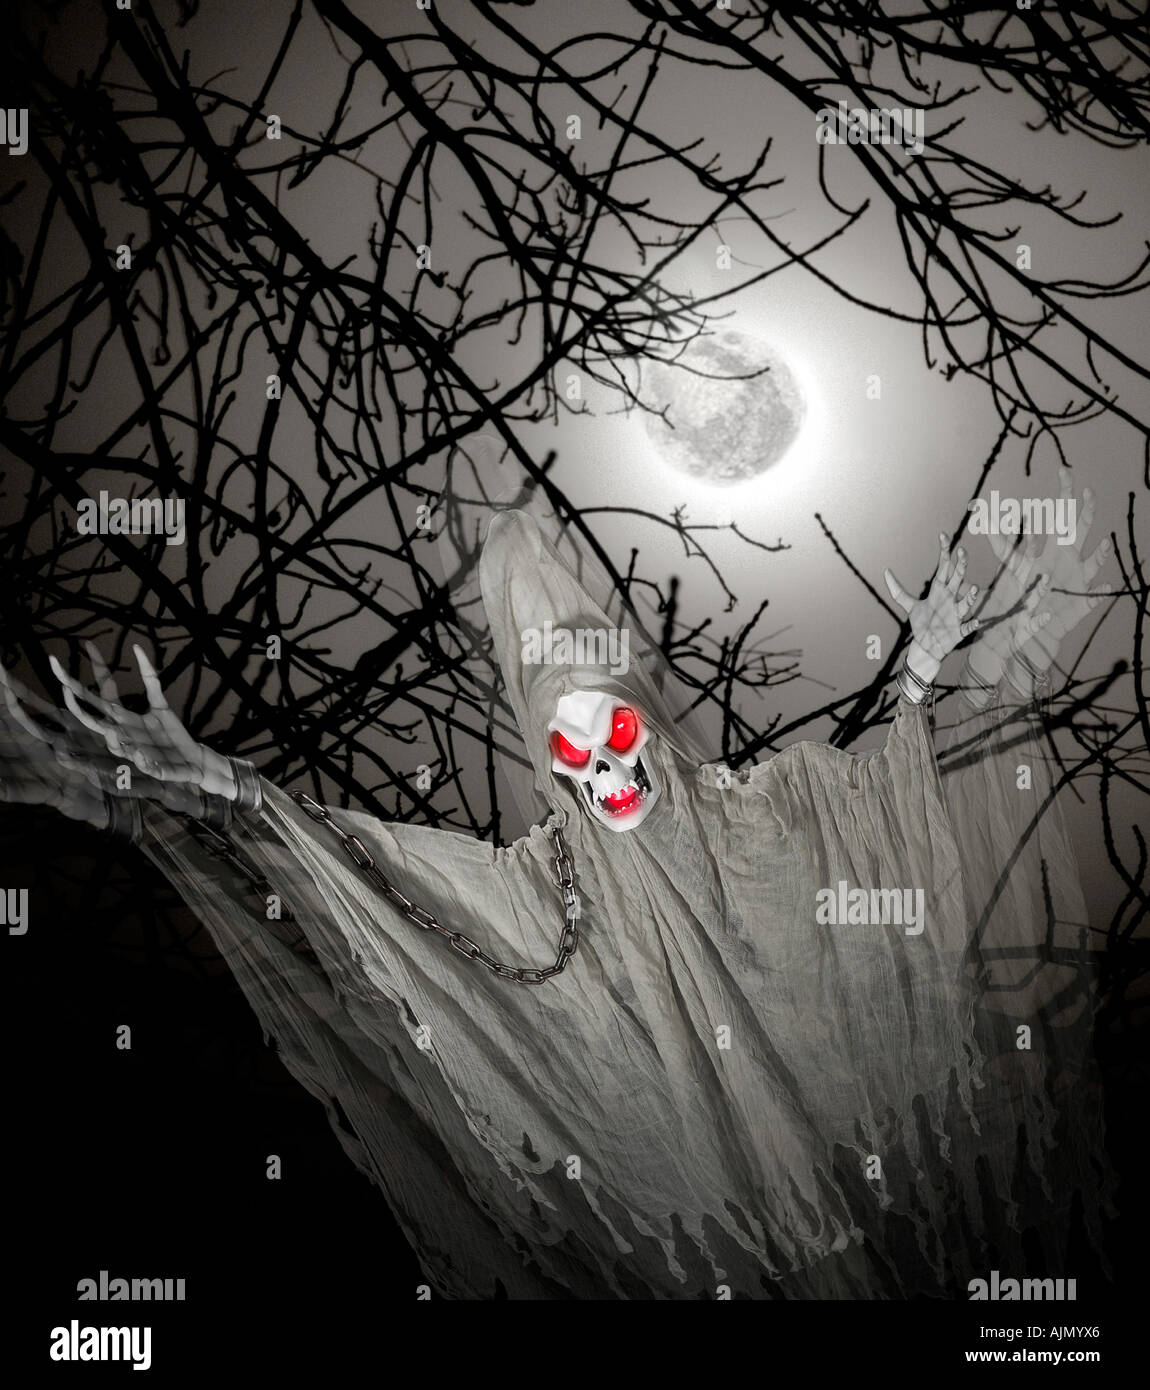 Ghost Ghoul Demon Haunting The Night Of Halloween With The Full Moon - Stock Image